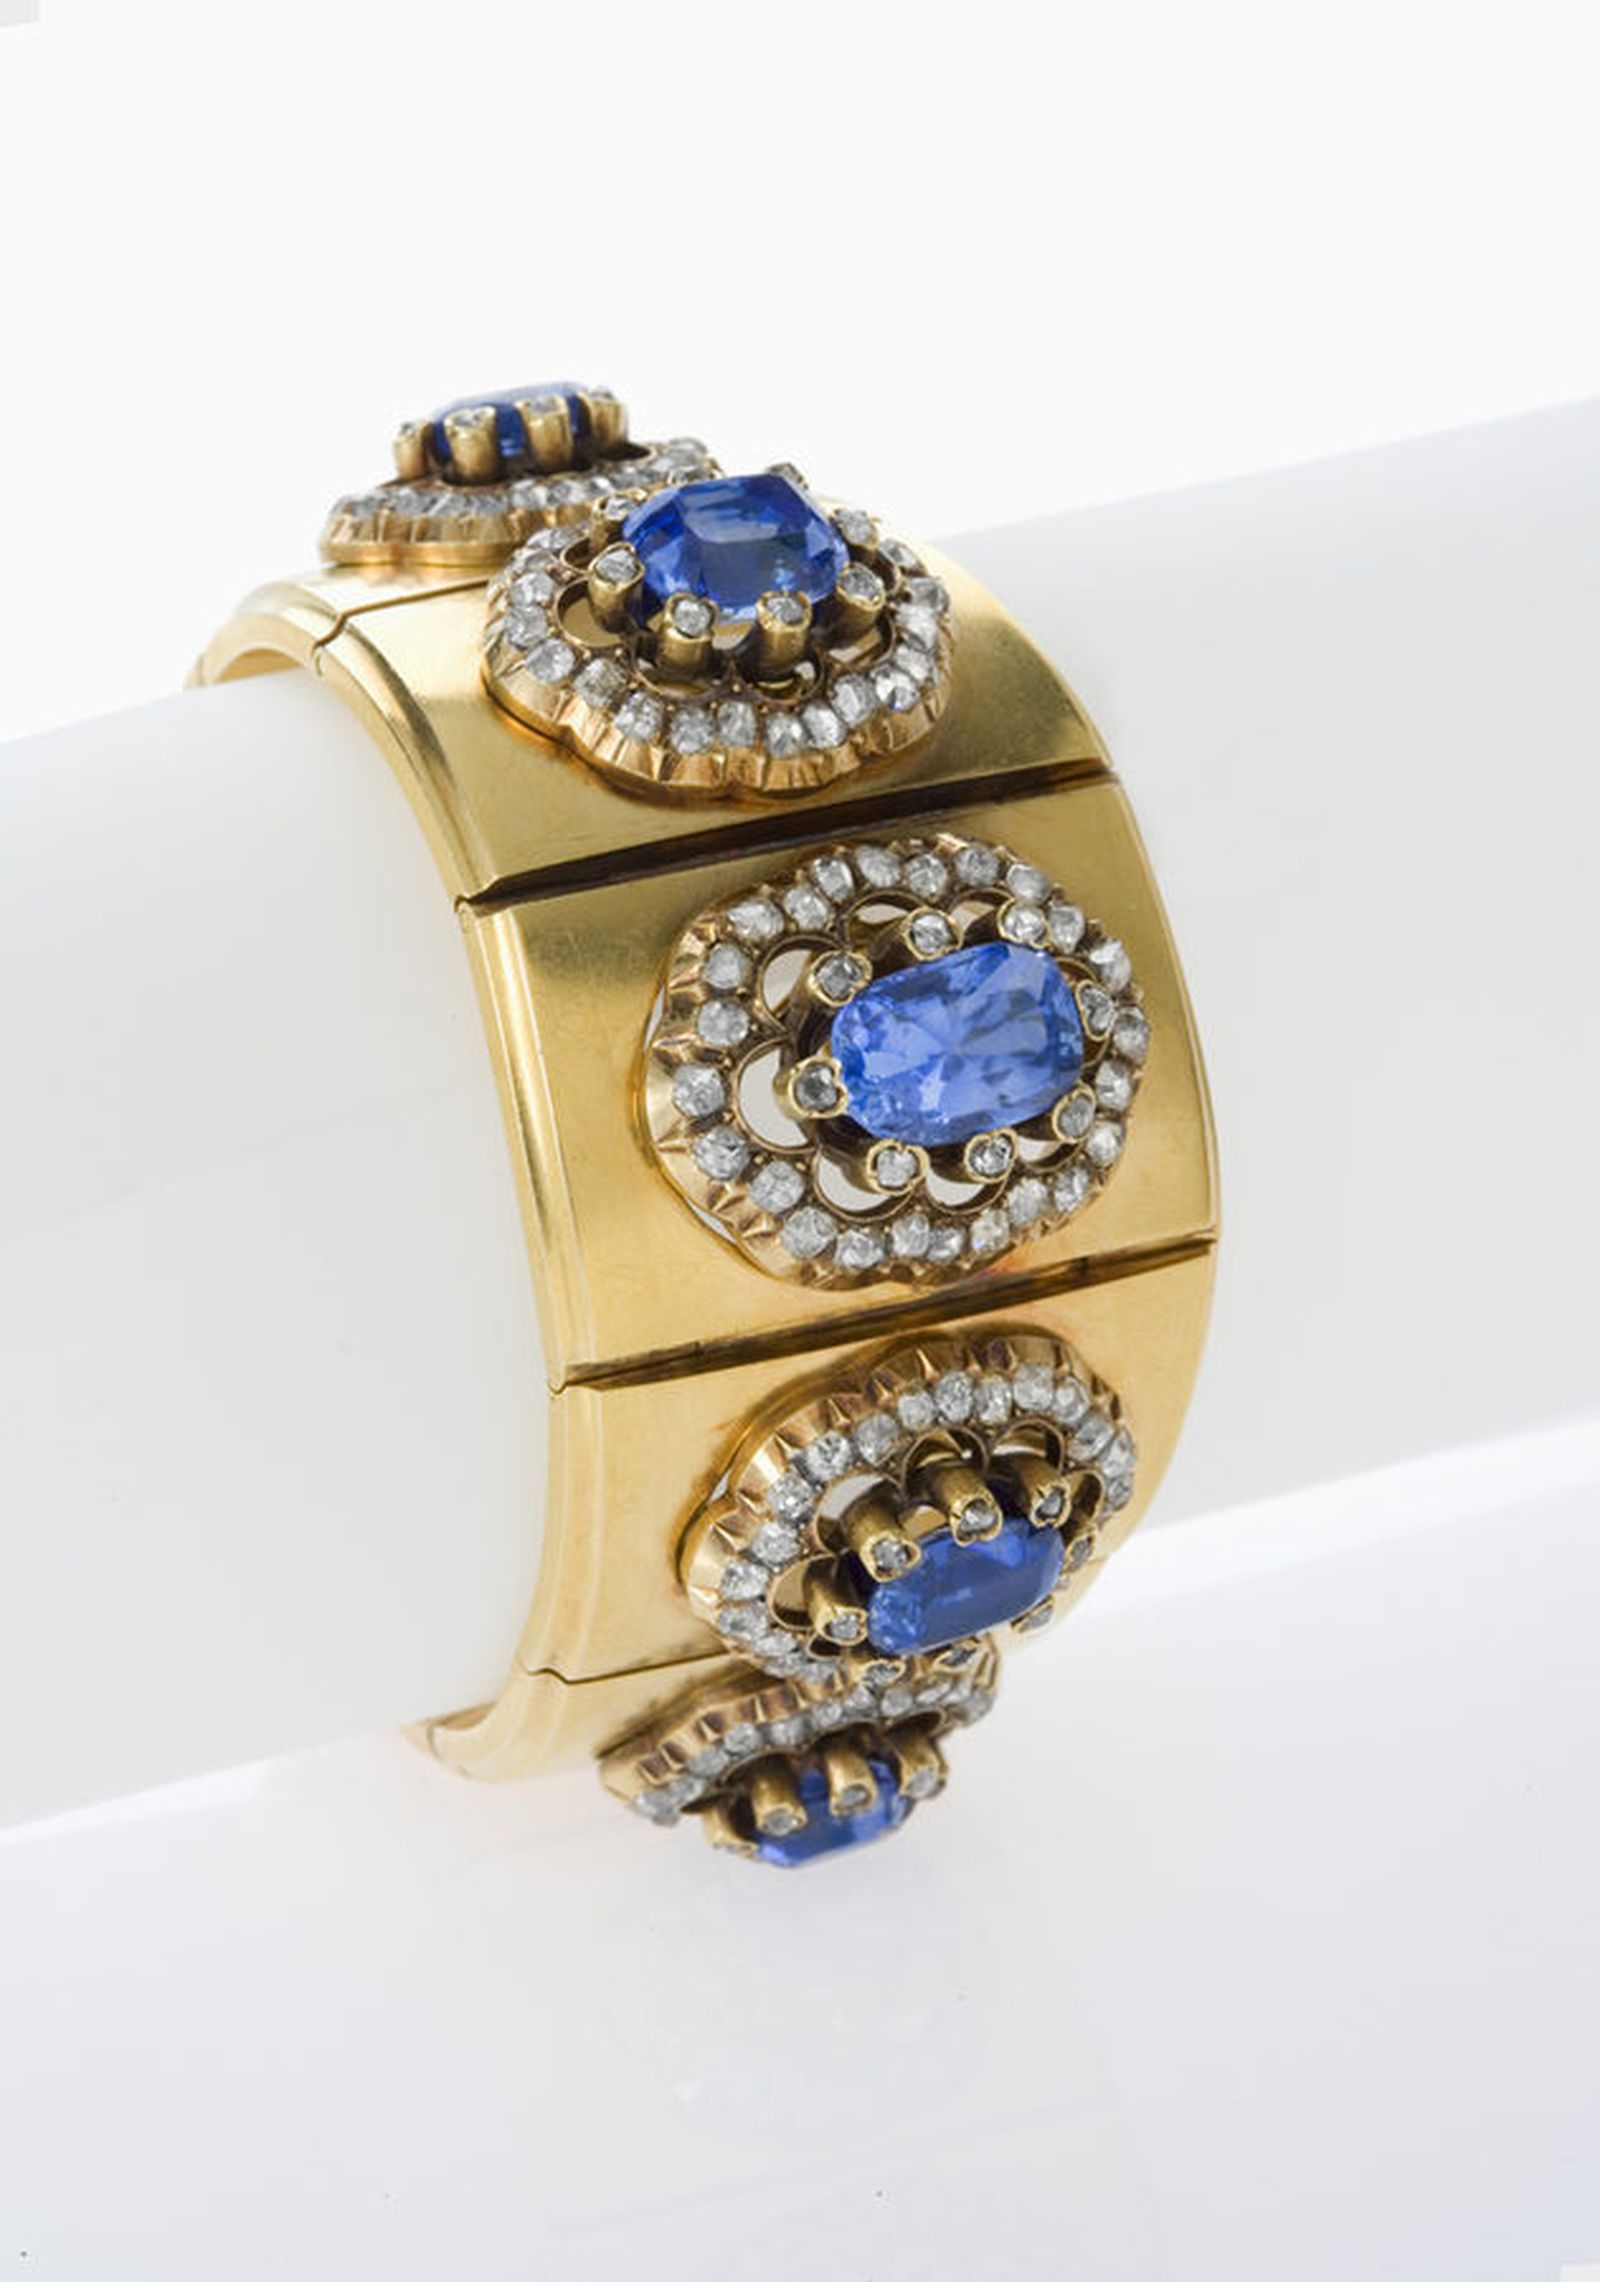 Who 39 s buying antique jewelry in nyc independent women for Antique jewelry stores nyc